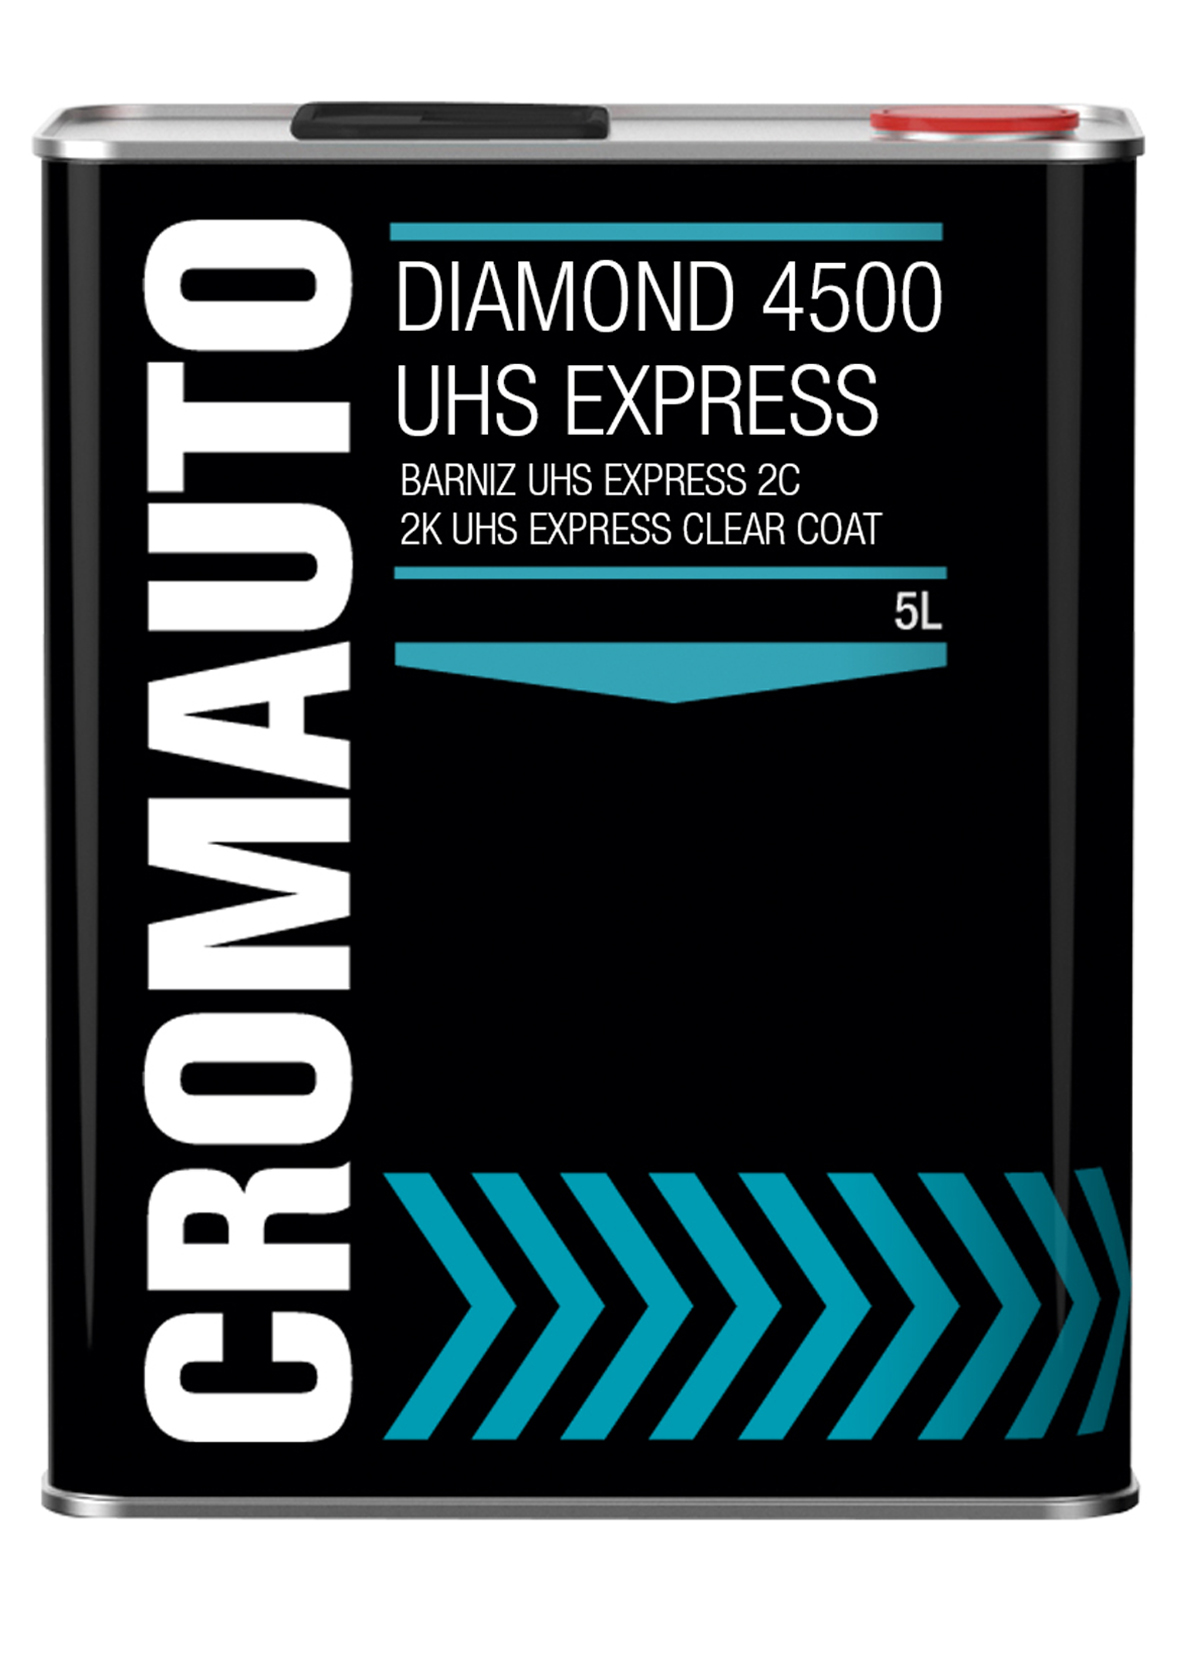 Diamond 4500 UHS express